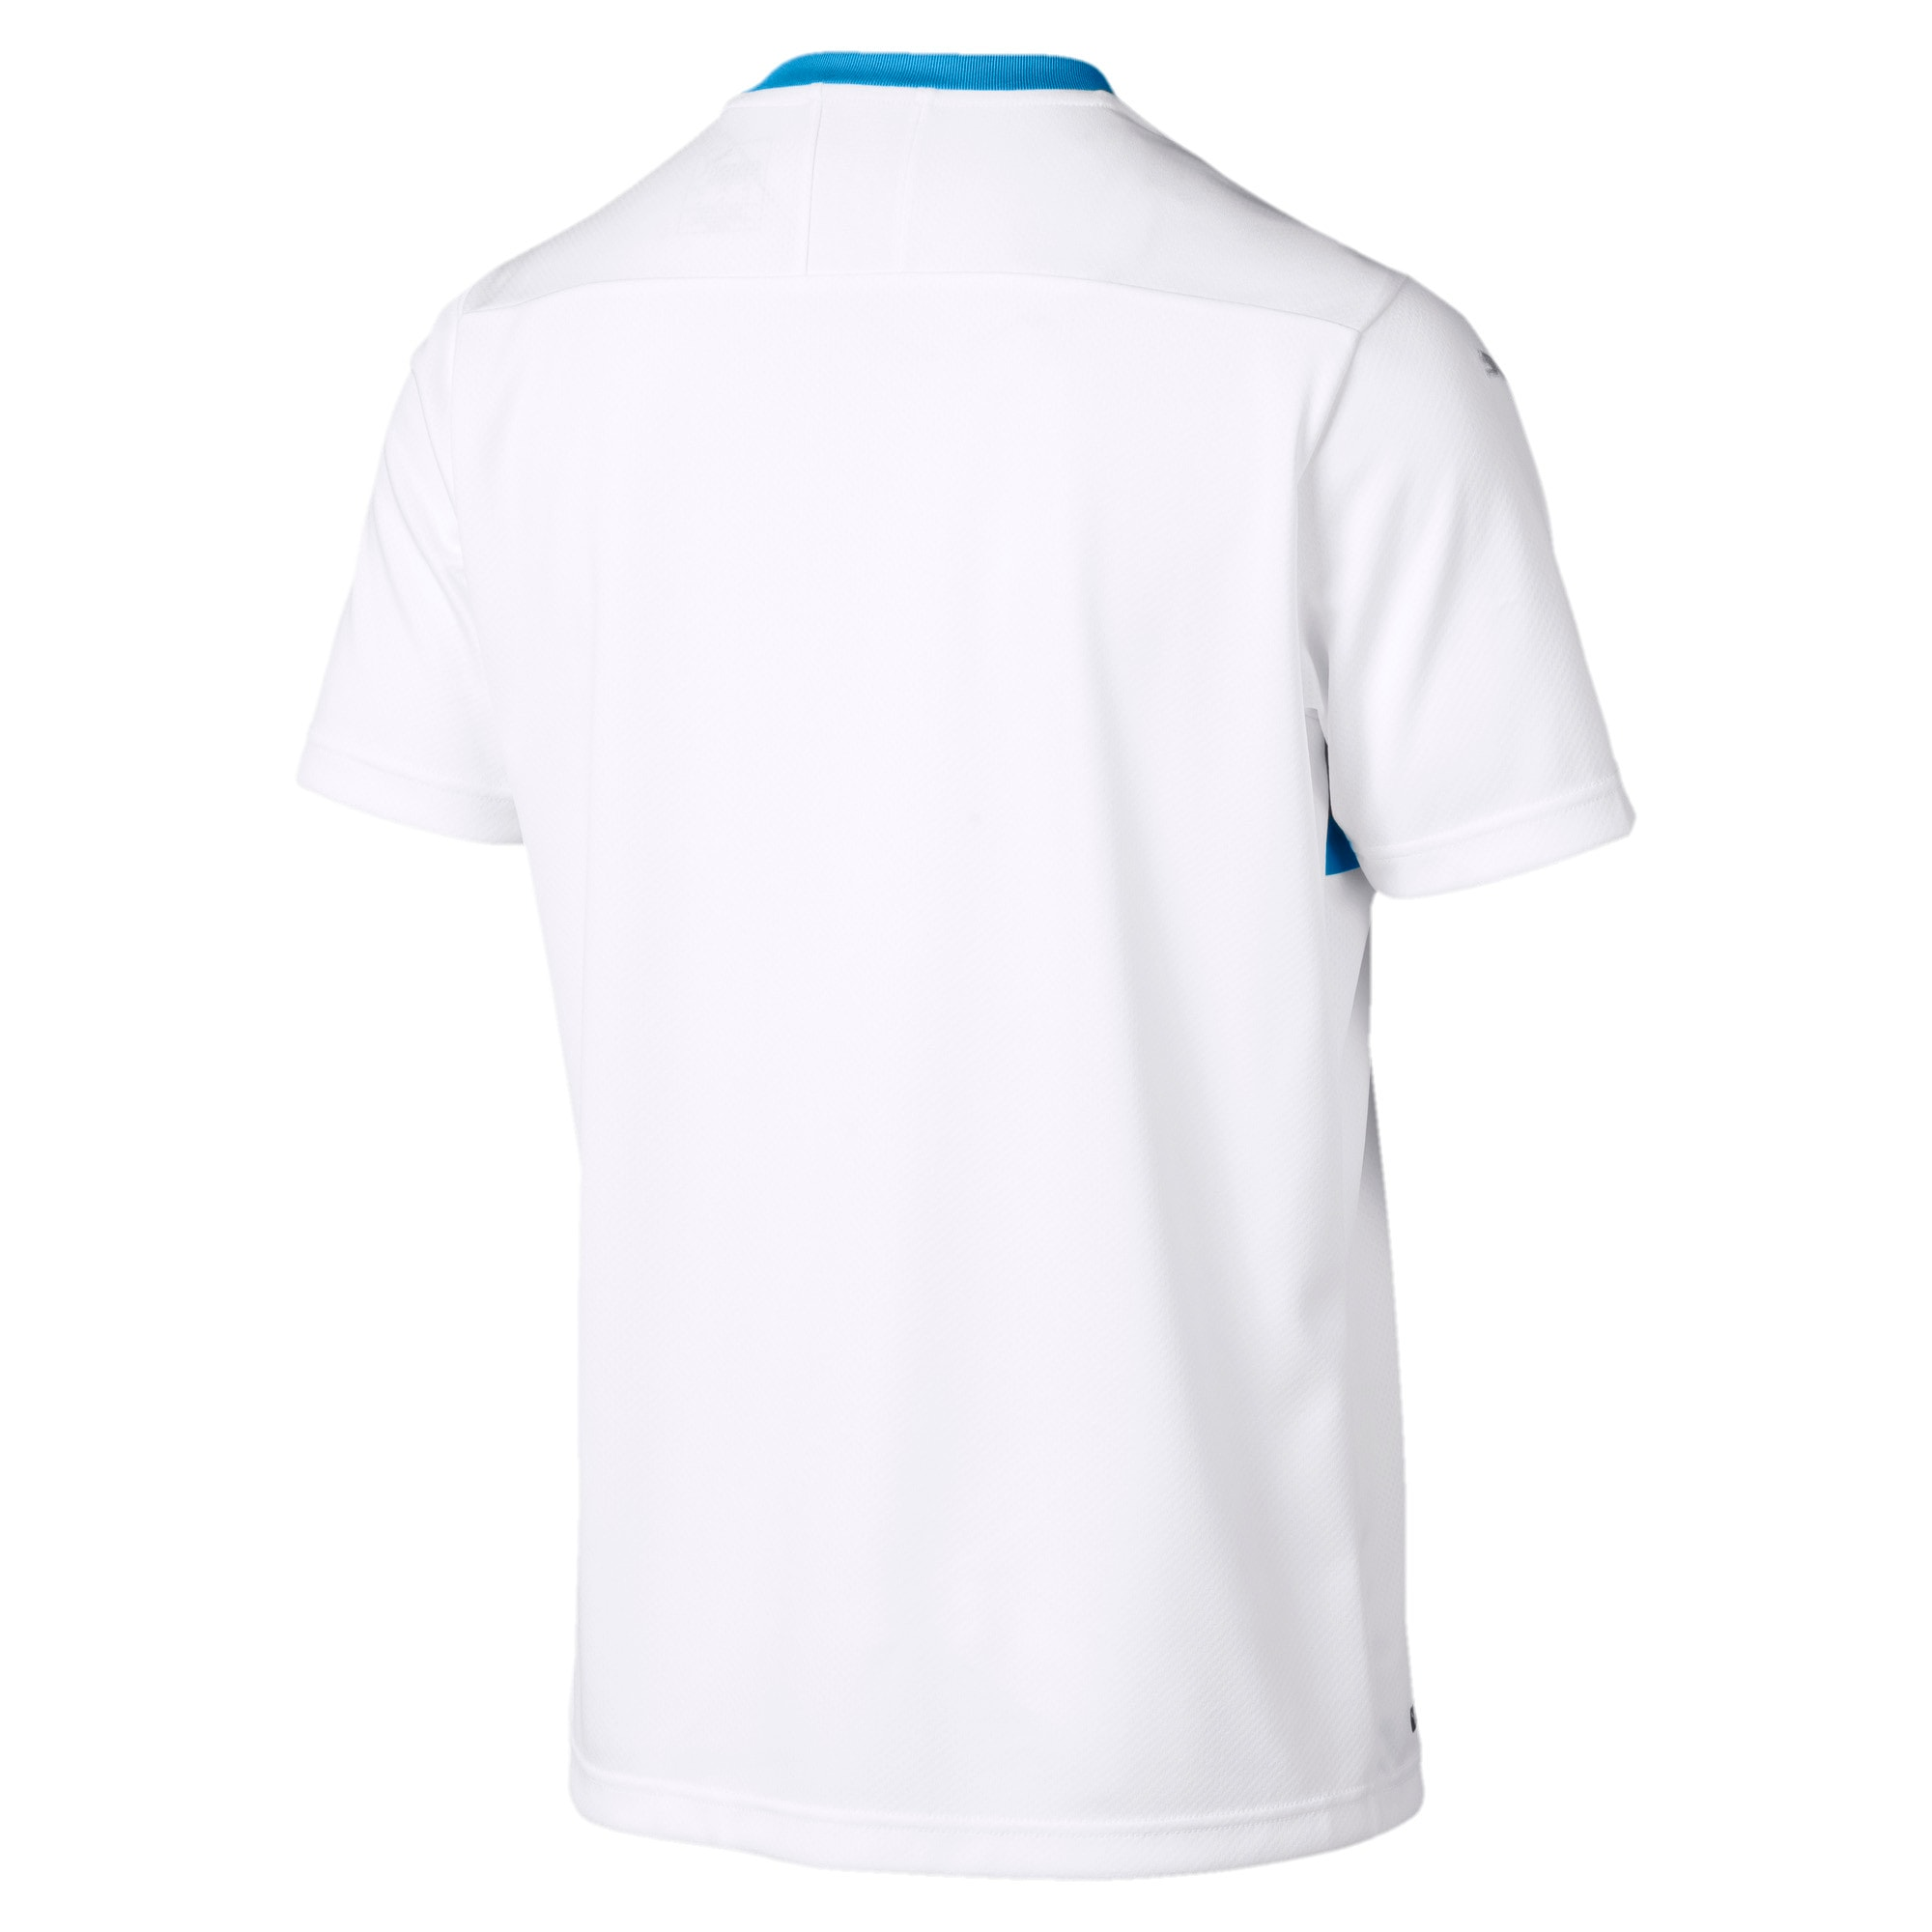 Thumbnail 2 of Olympique de Marseille120th Anniversary Herren Replica Kurzarm Trikot, Puma White-Bleu Azur, medium